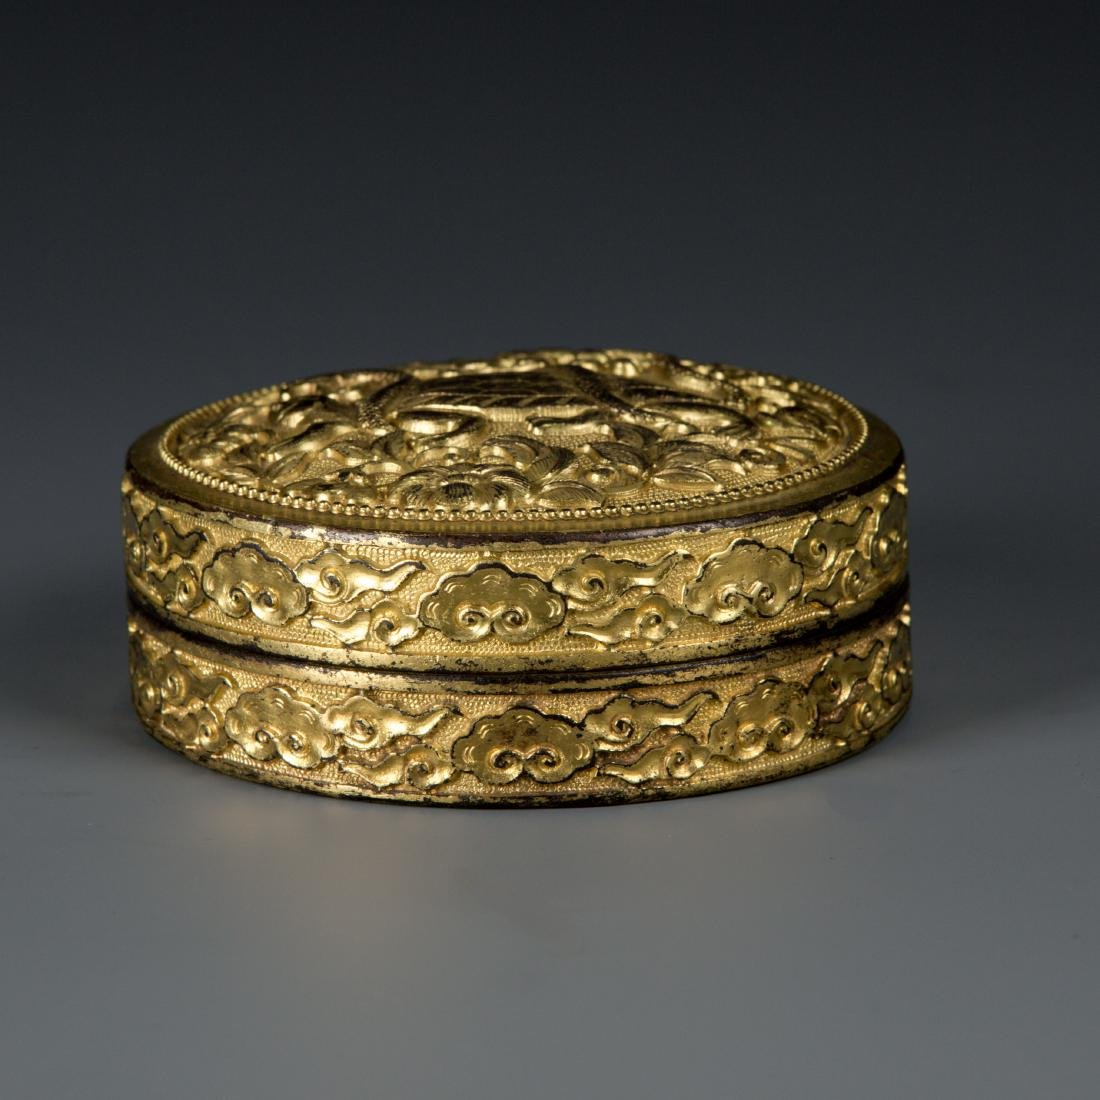 Round Gilt Bronze box with Turtle and Snake